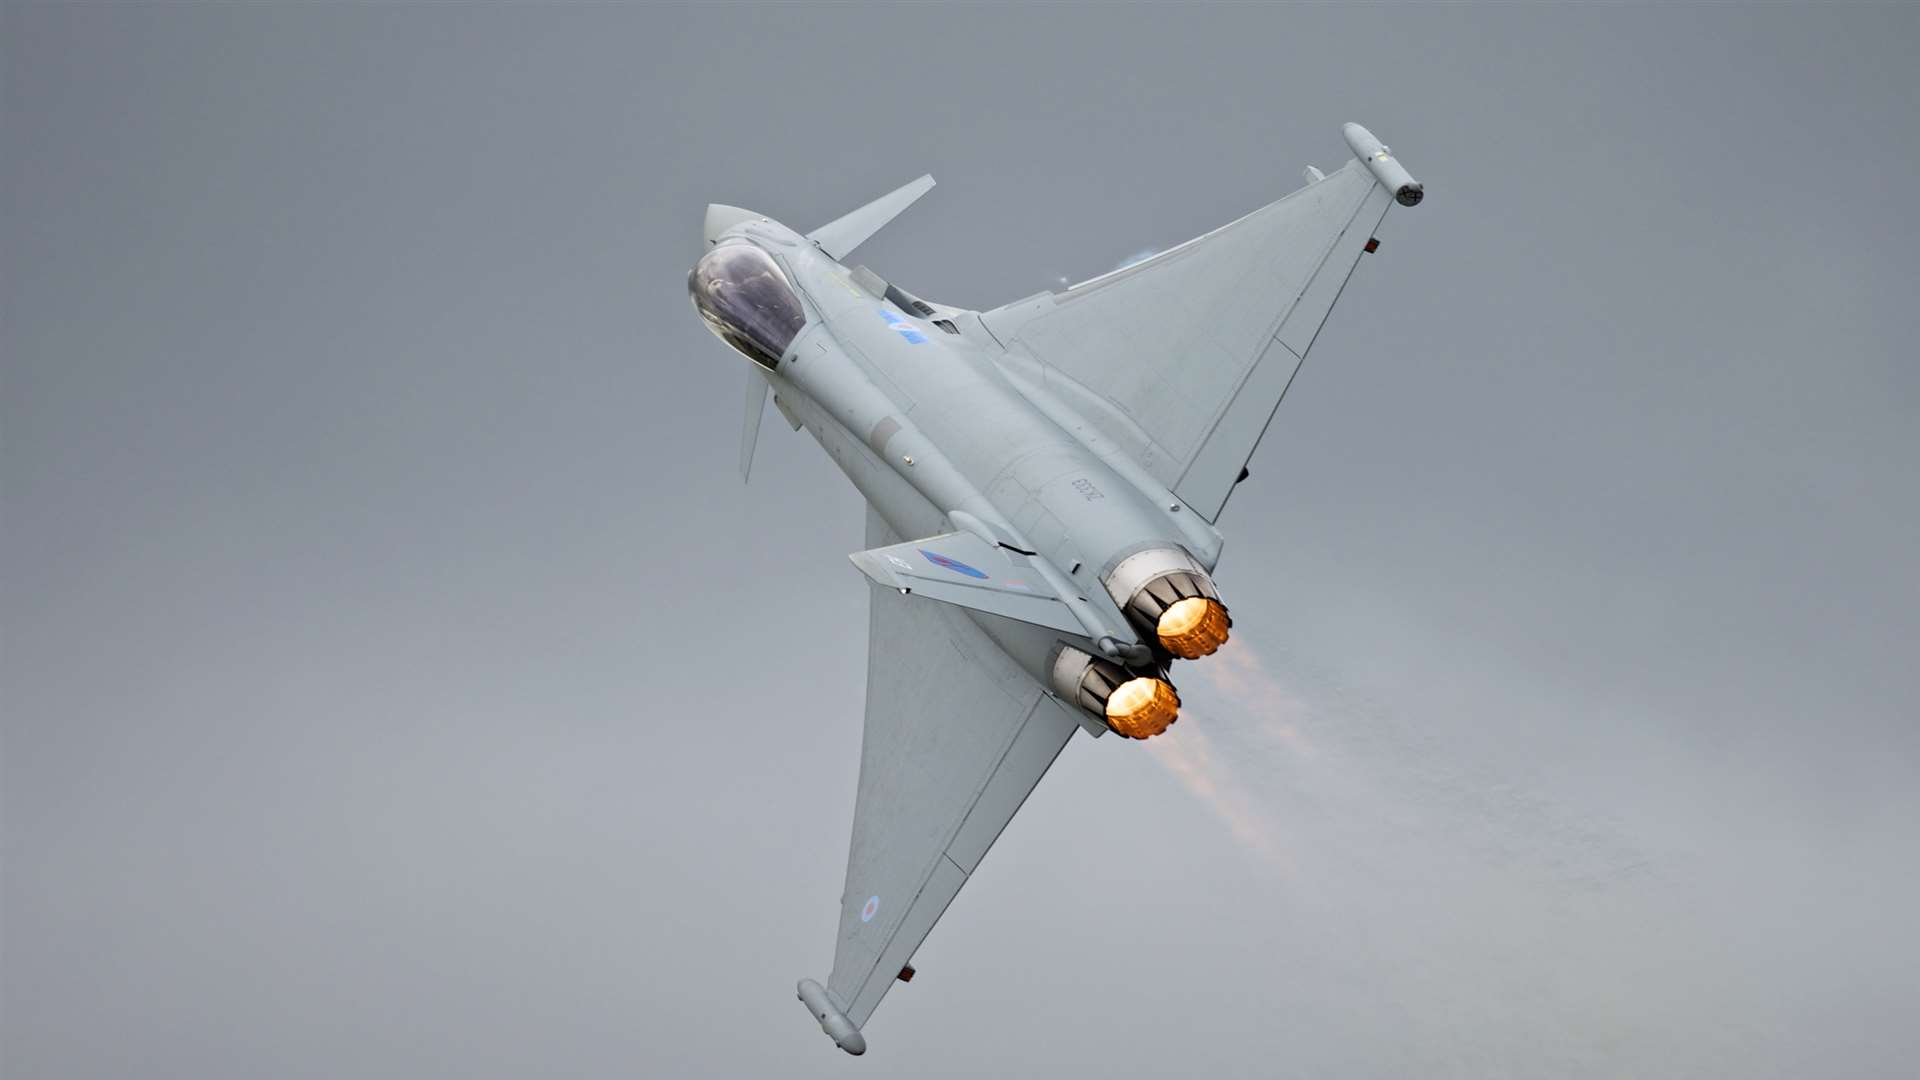 RAF Typhoons are already being prepared for action in Syria